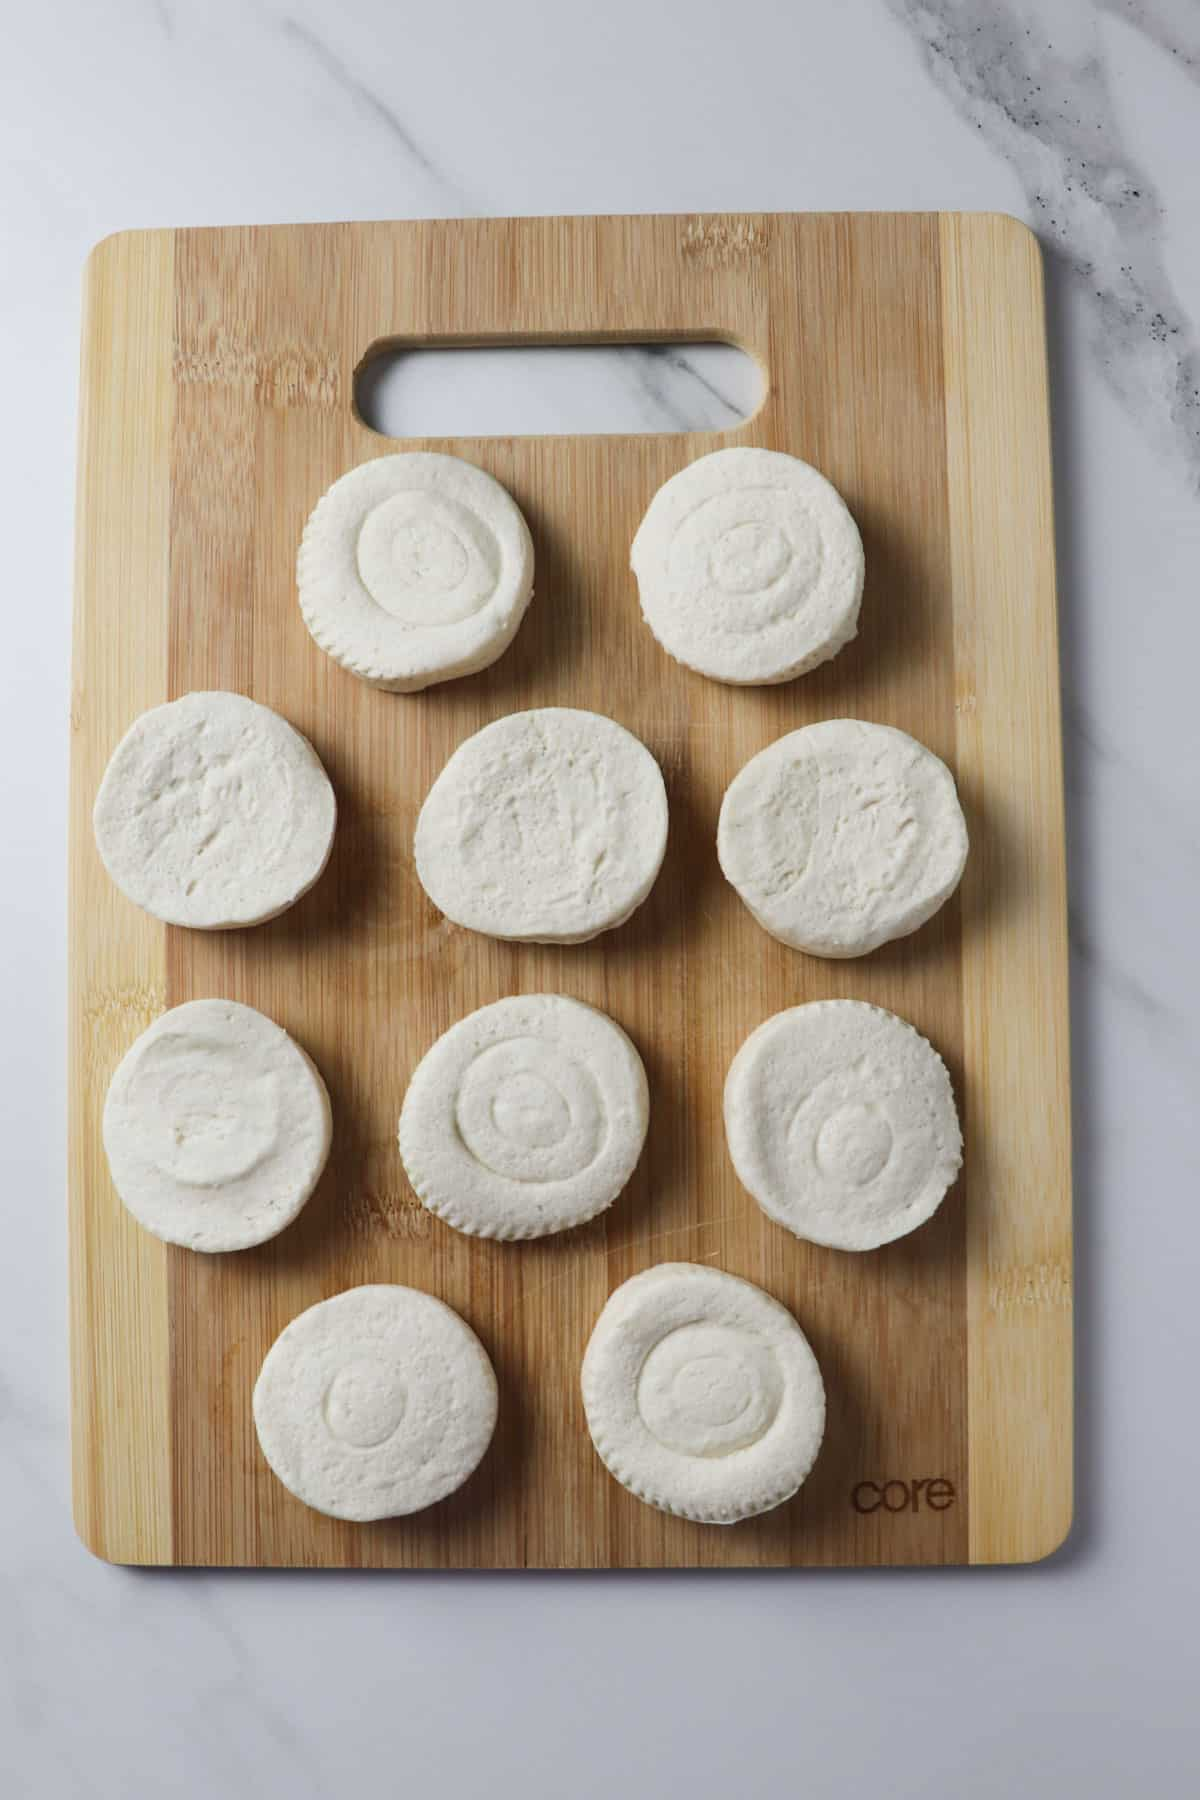 biscuits laid out on wooden cutting board